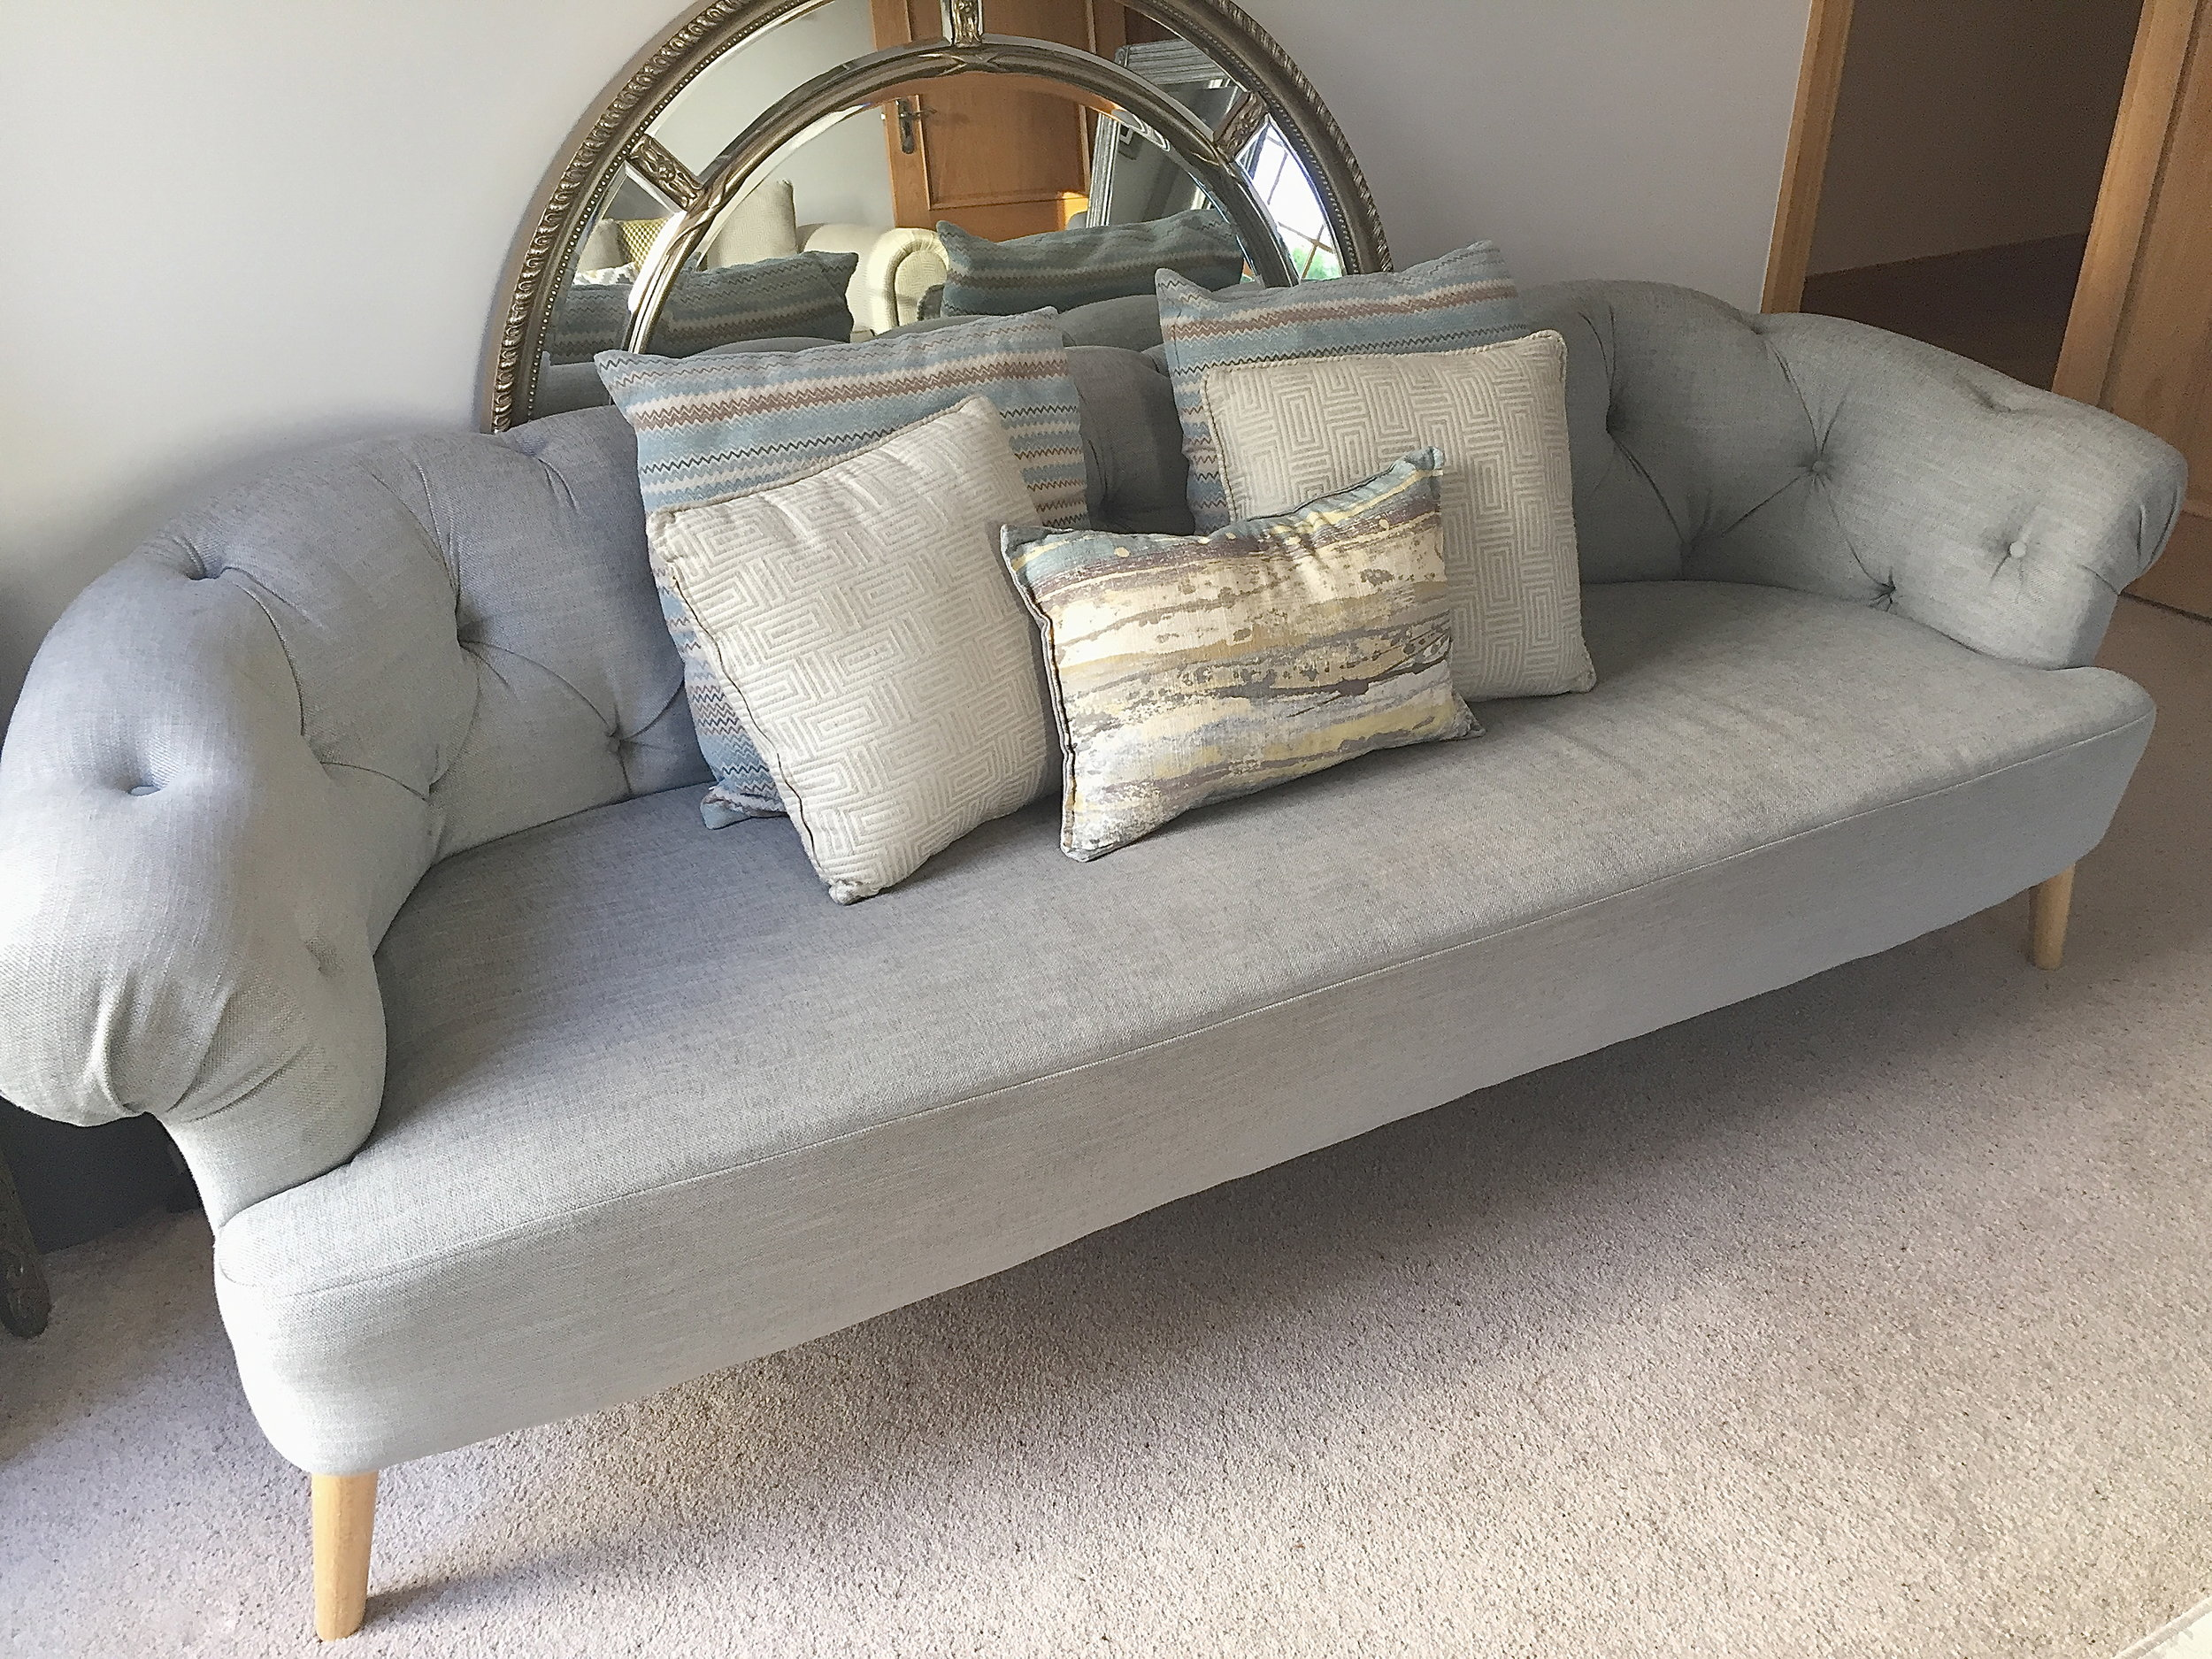 Furniture & Stlying - Questions and Answers